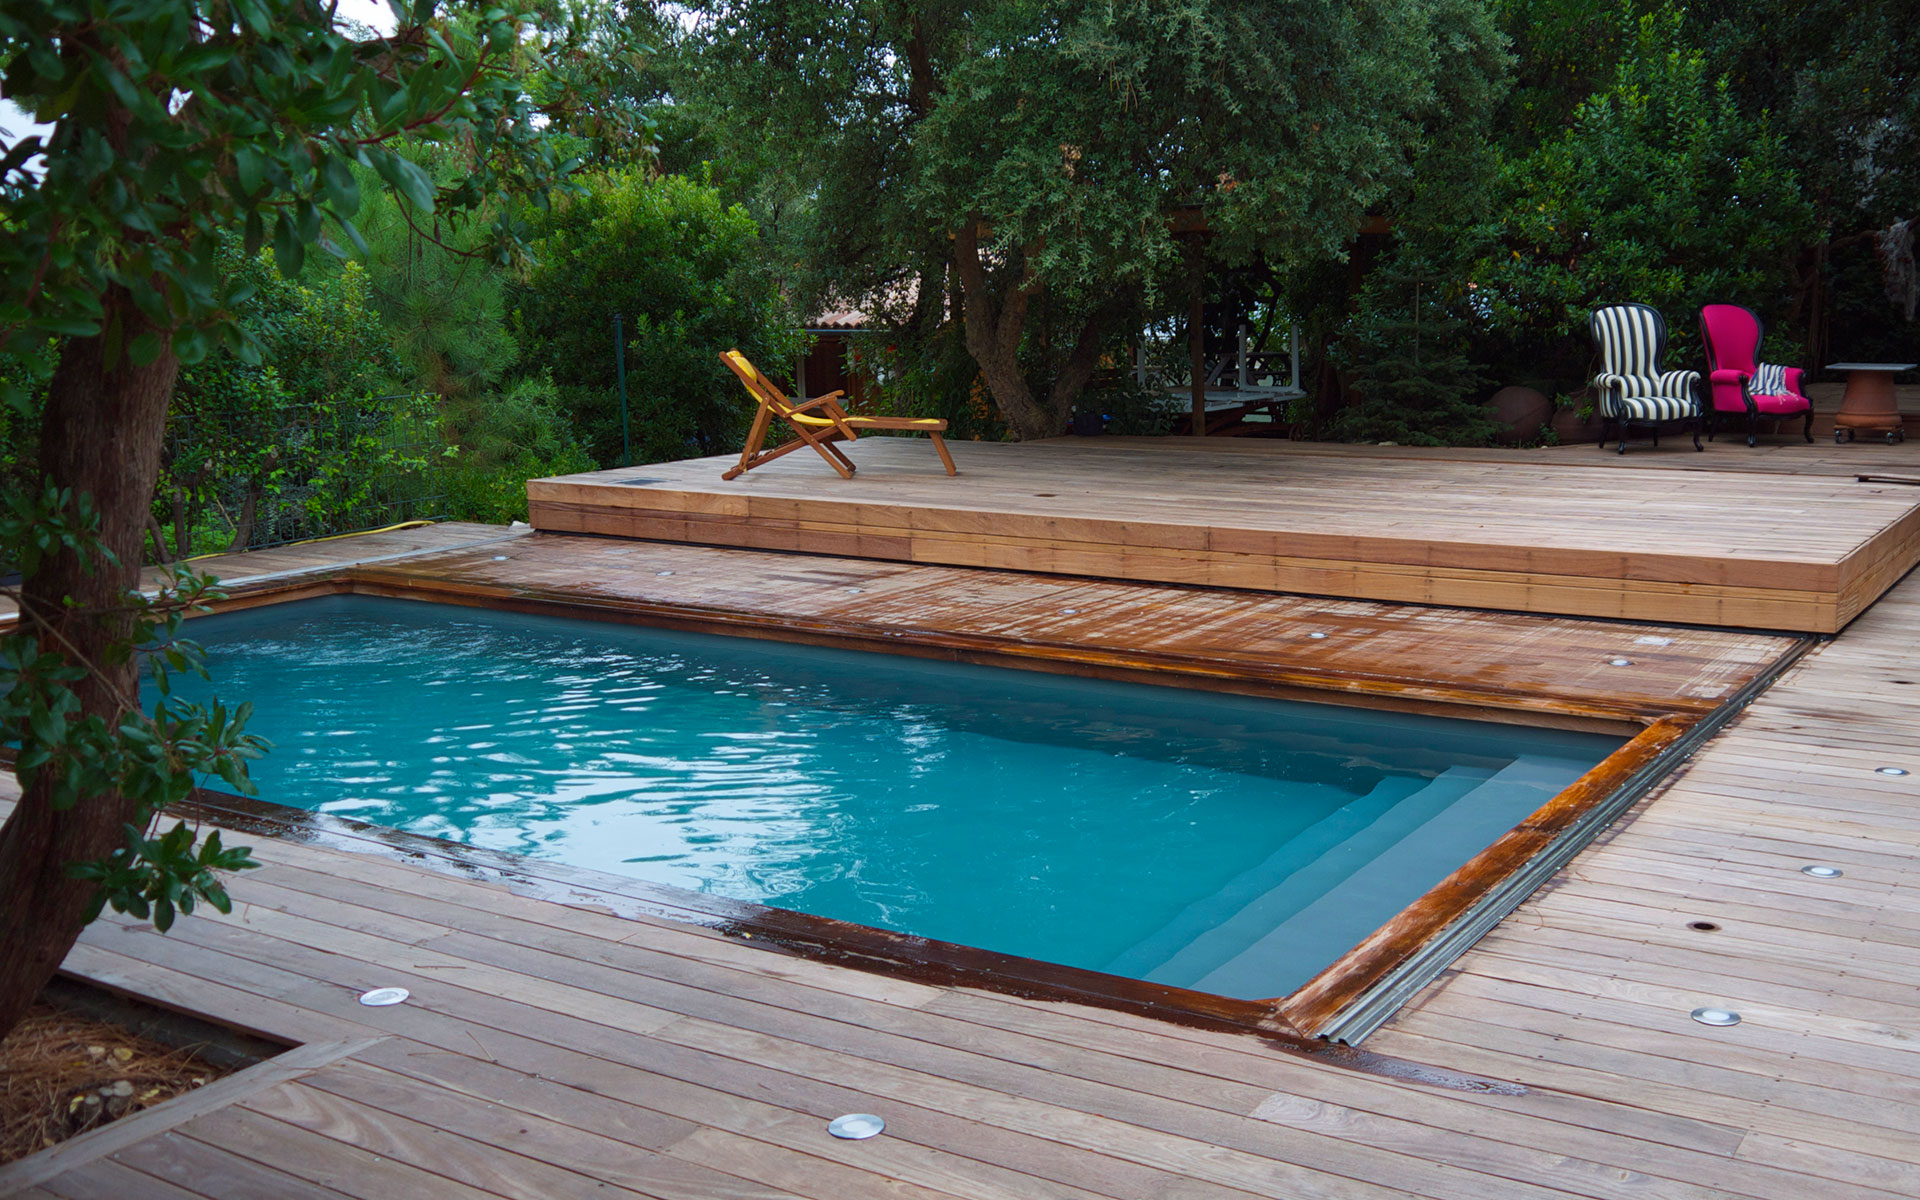 Terrasse mobile pour piscine hidden pool fond mobile for Piscine 33